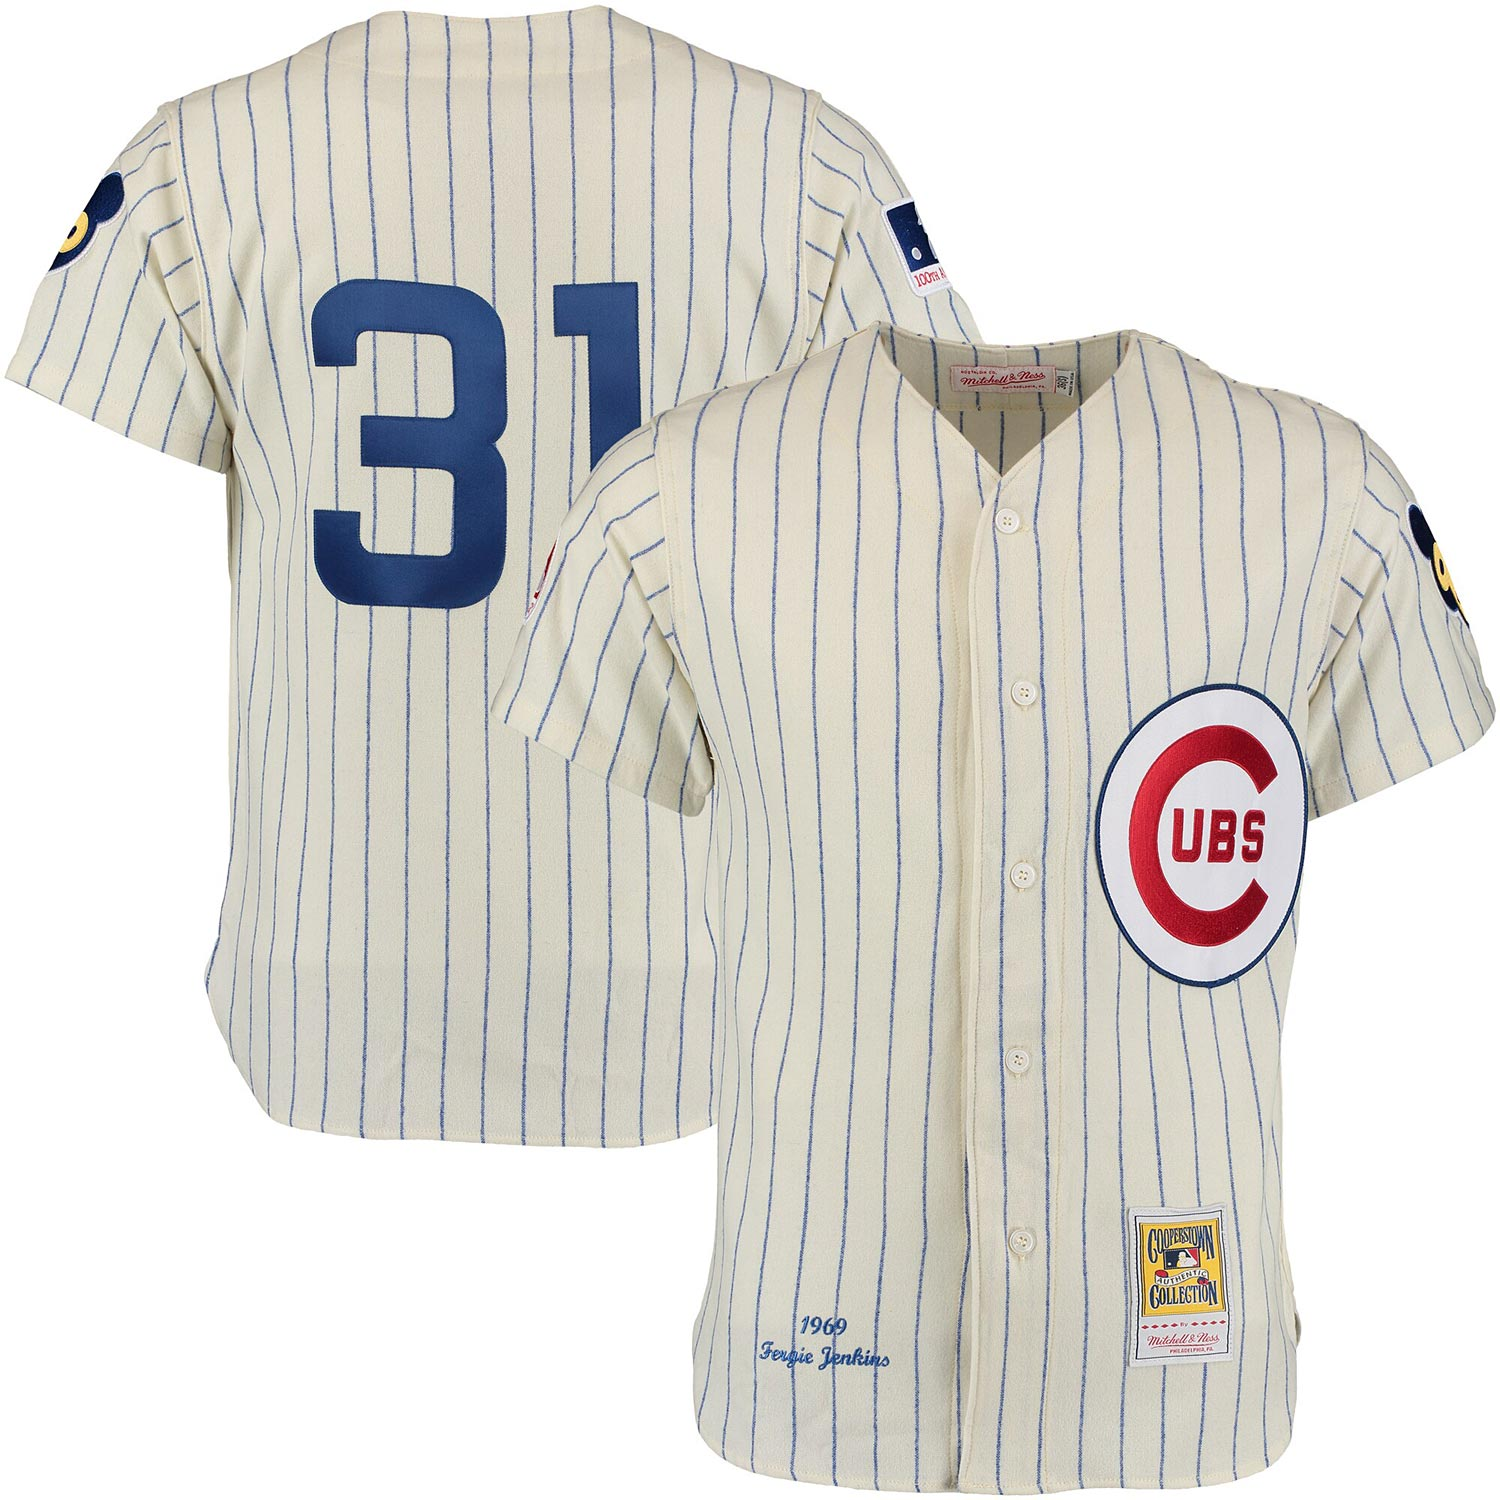 Chicago Cubs Authentic 1969 Fergie Jenkins Home Jersey